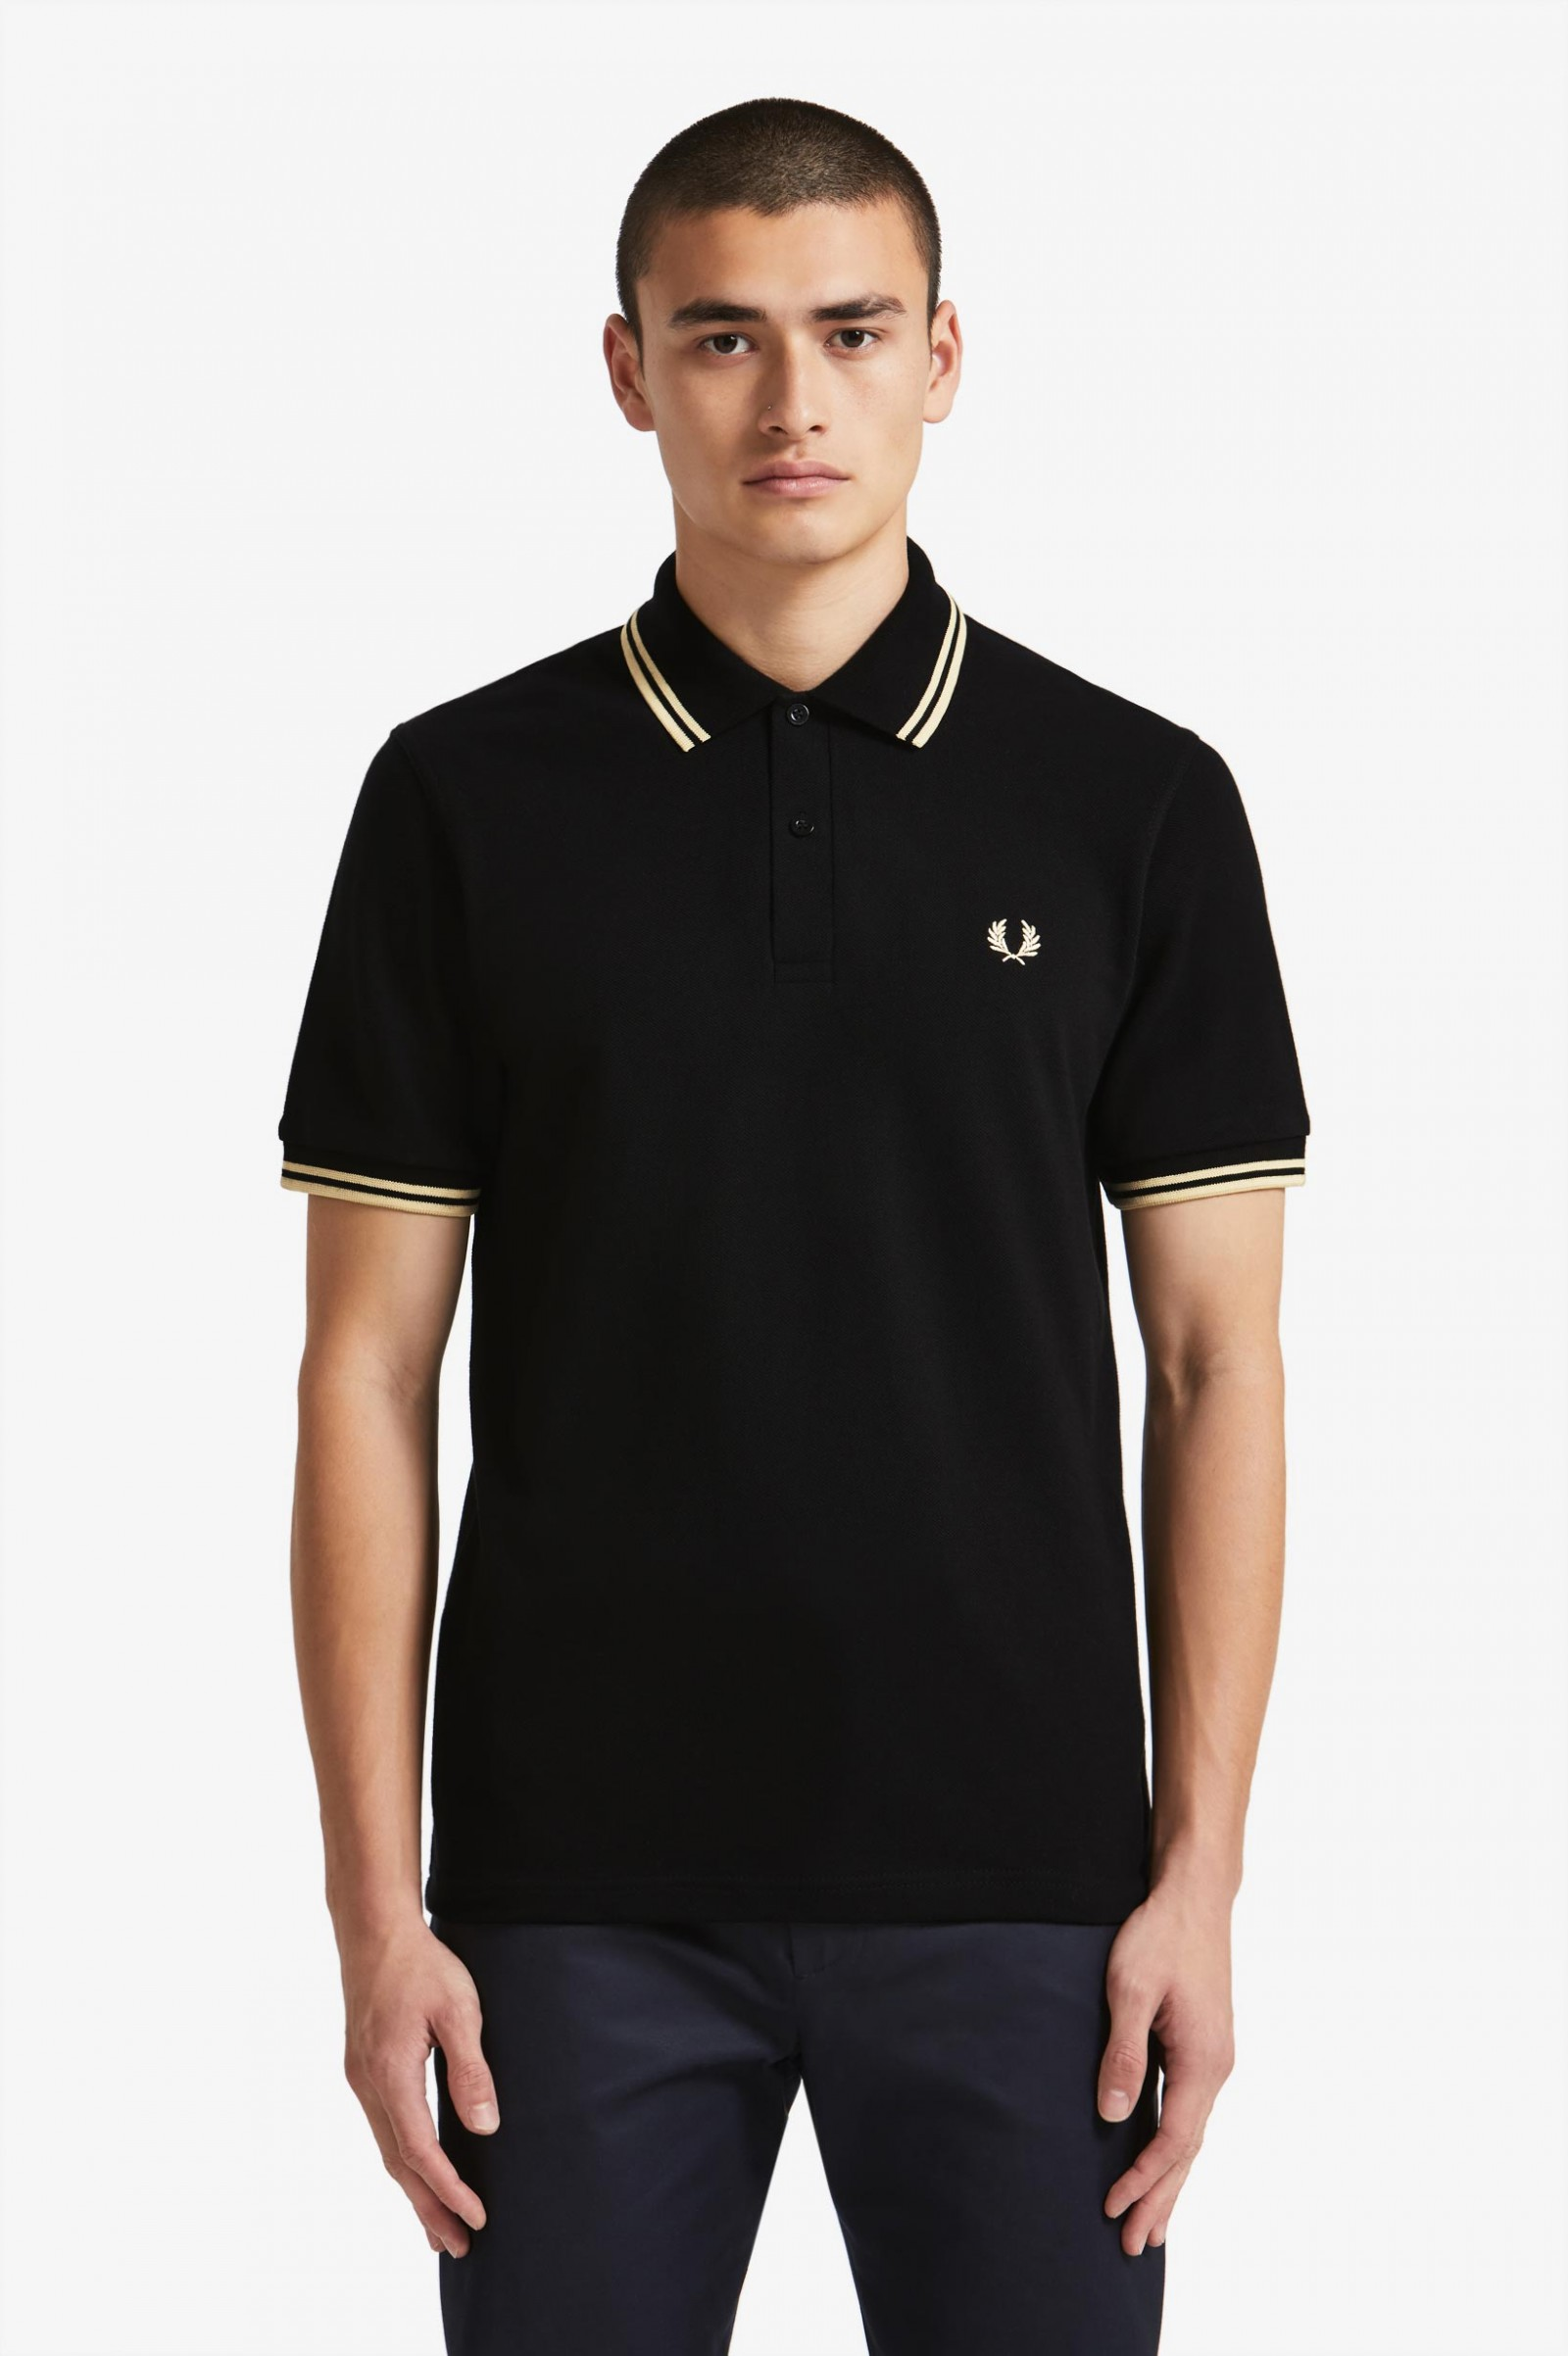 m12 black champagne champagne the fred perry shirt. Black Bedroom Furniture Sets. Home Design Ideas